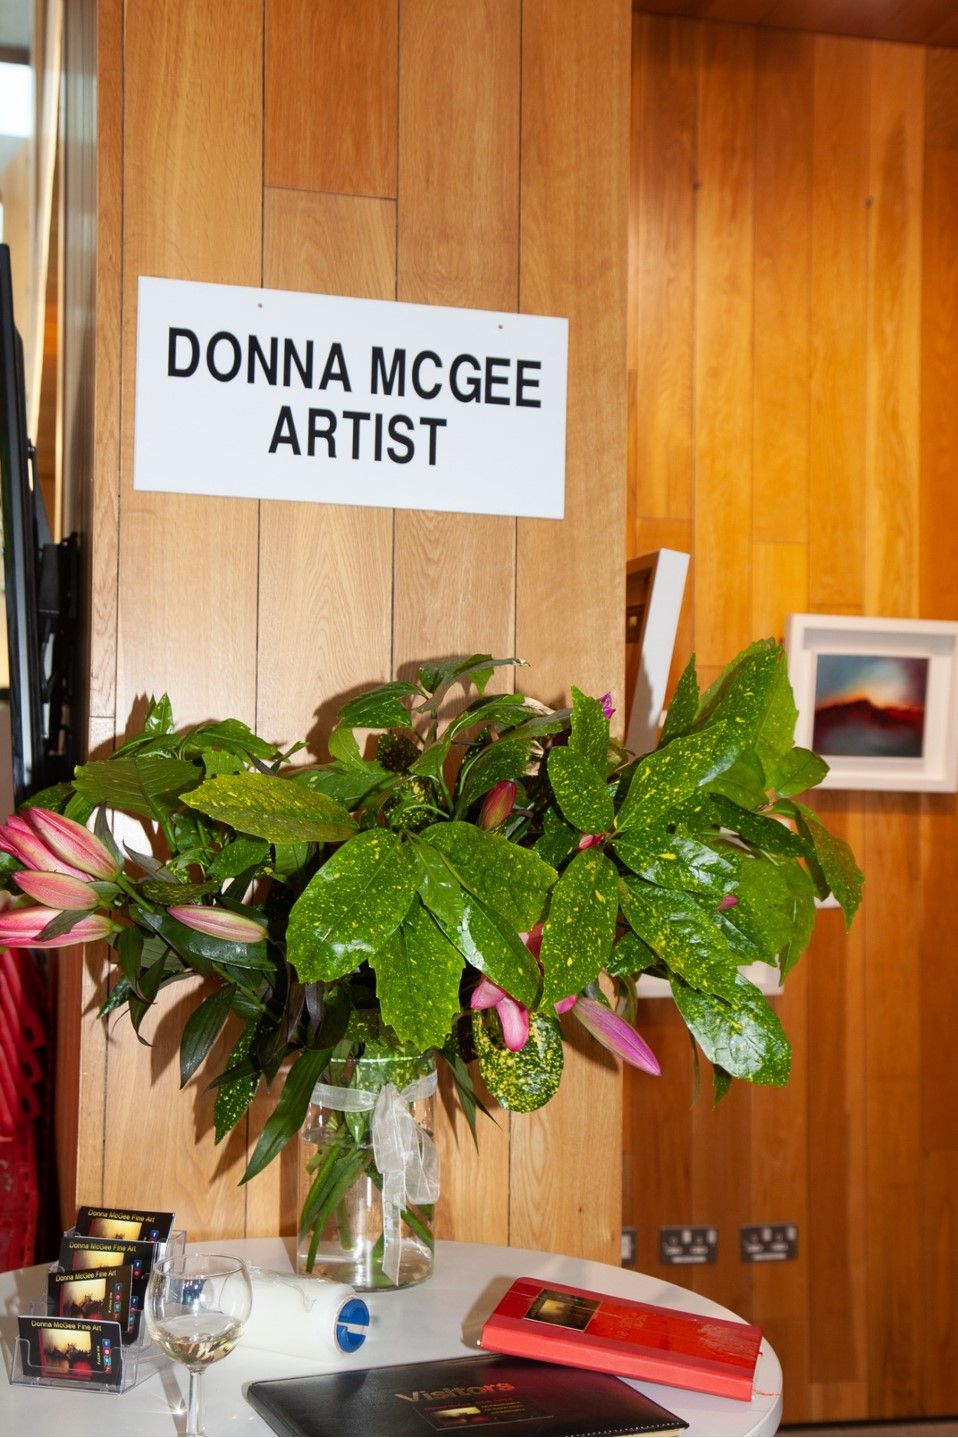 donna mcgee artist at Shards of Light exhibition